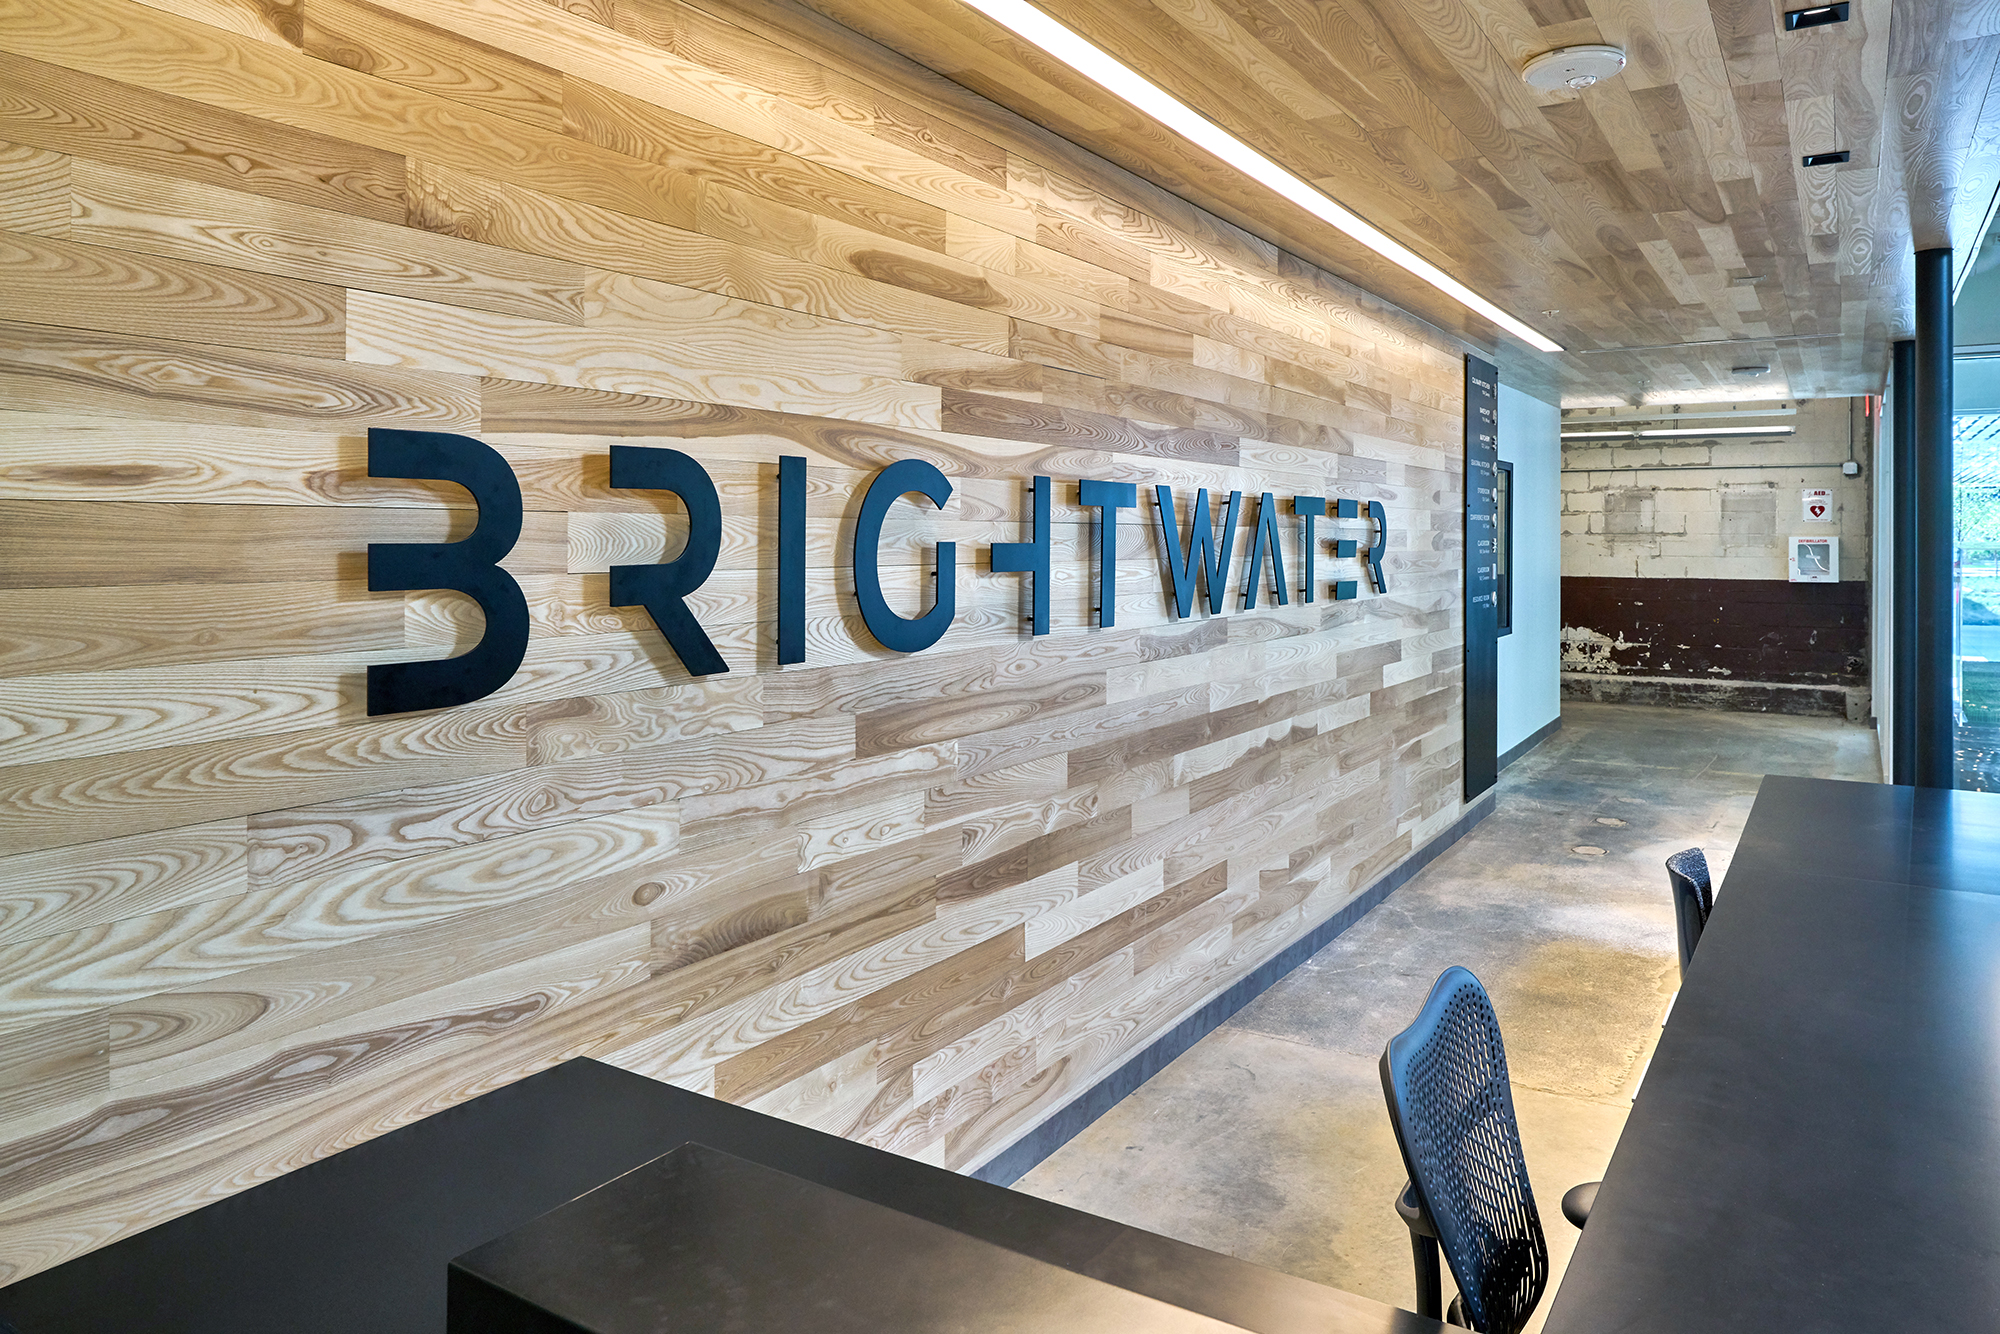 Brightwater location